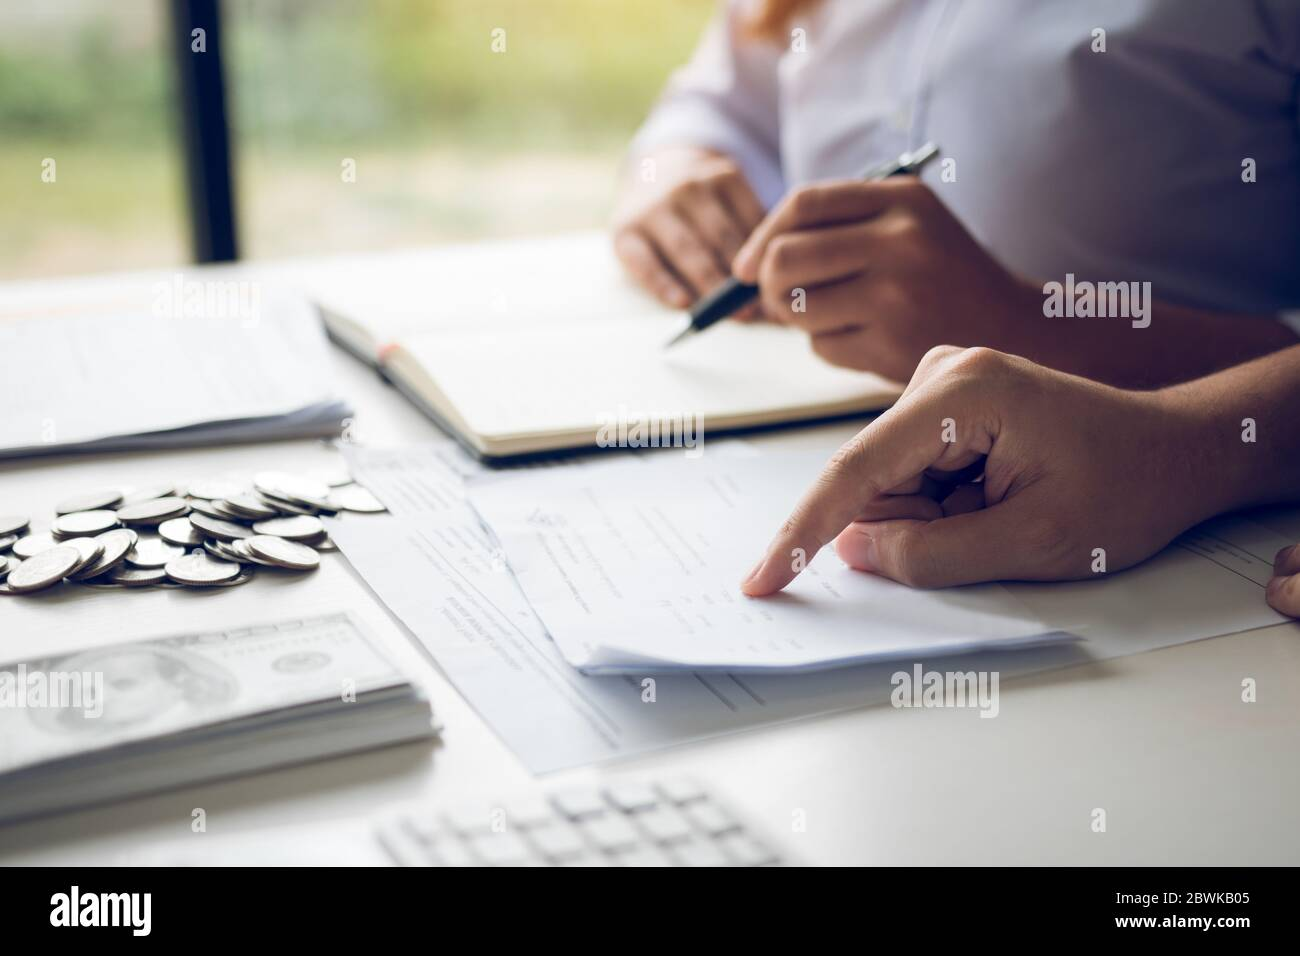 Two asian couples and men and women are together analyzing expenses or finances in deposit accounts and daily income sources with an savings economica Stock Photo